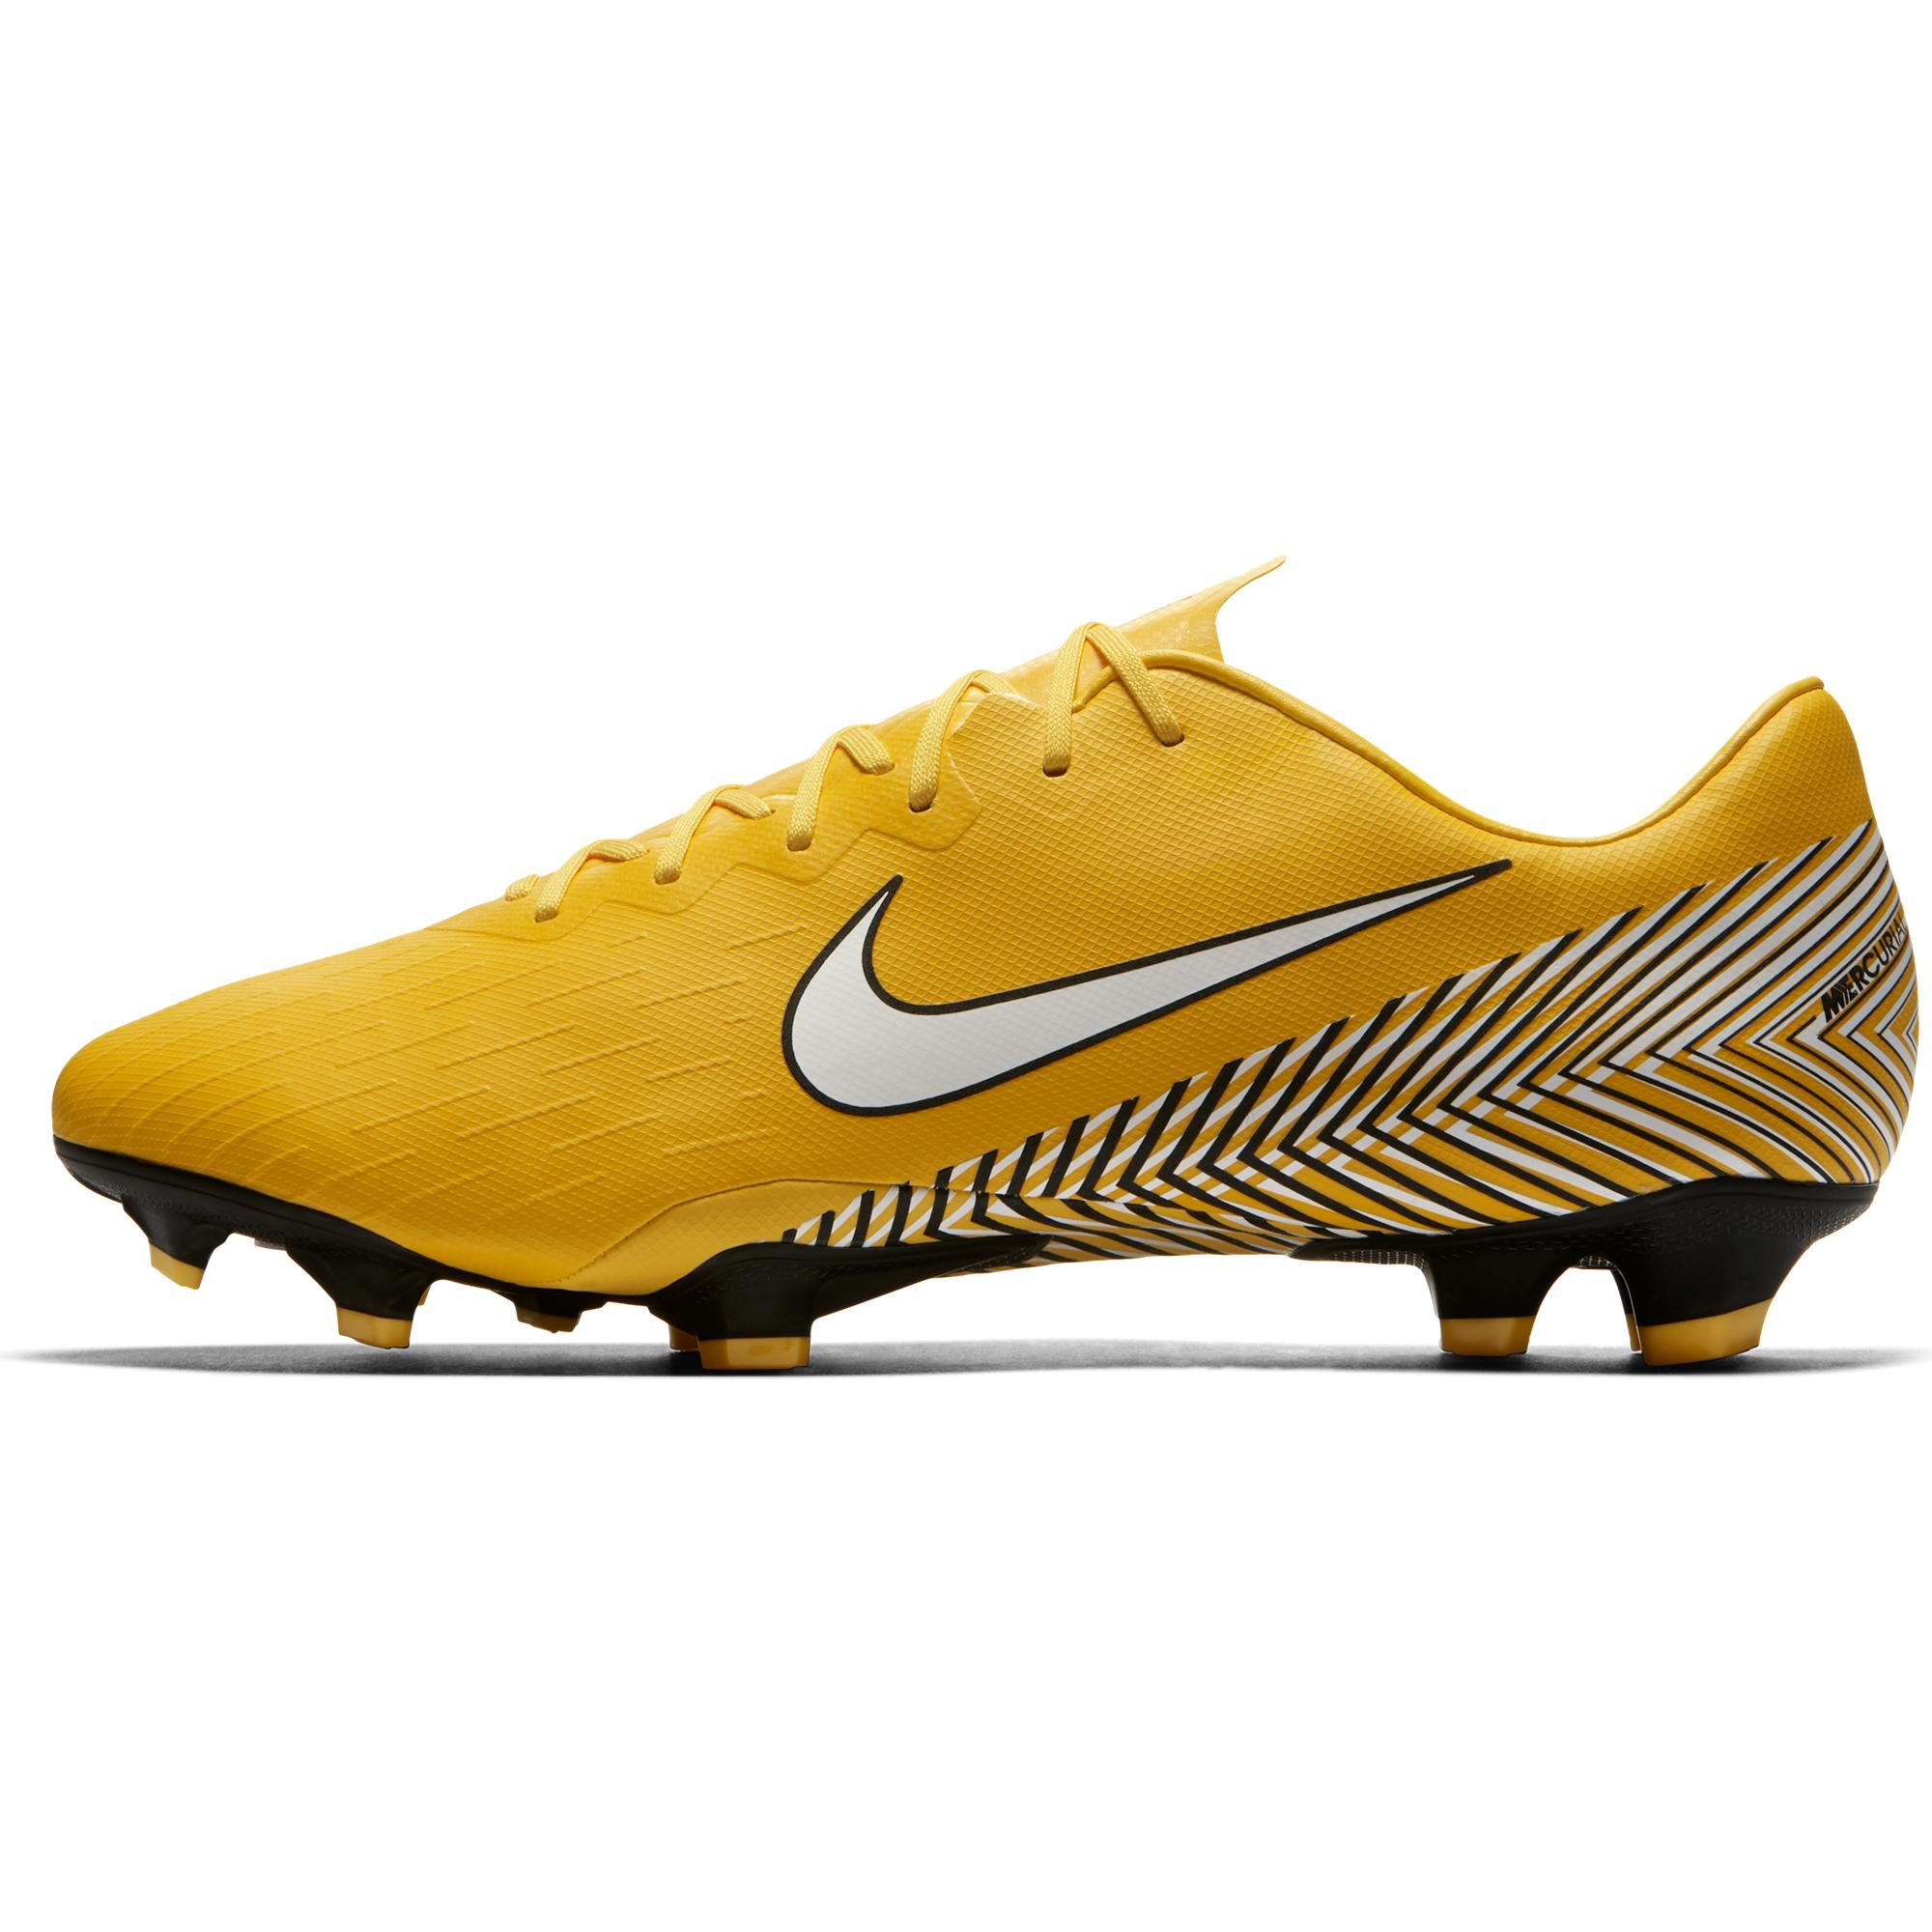 cost charm the cheapest cheap prices Nike Fußball-Schuhe VAPOR 12 PRO FG Neymar Jr